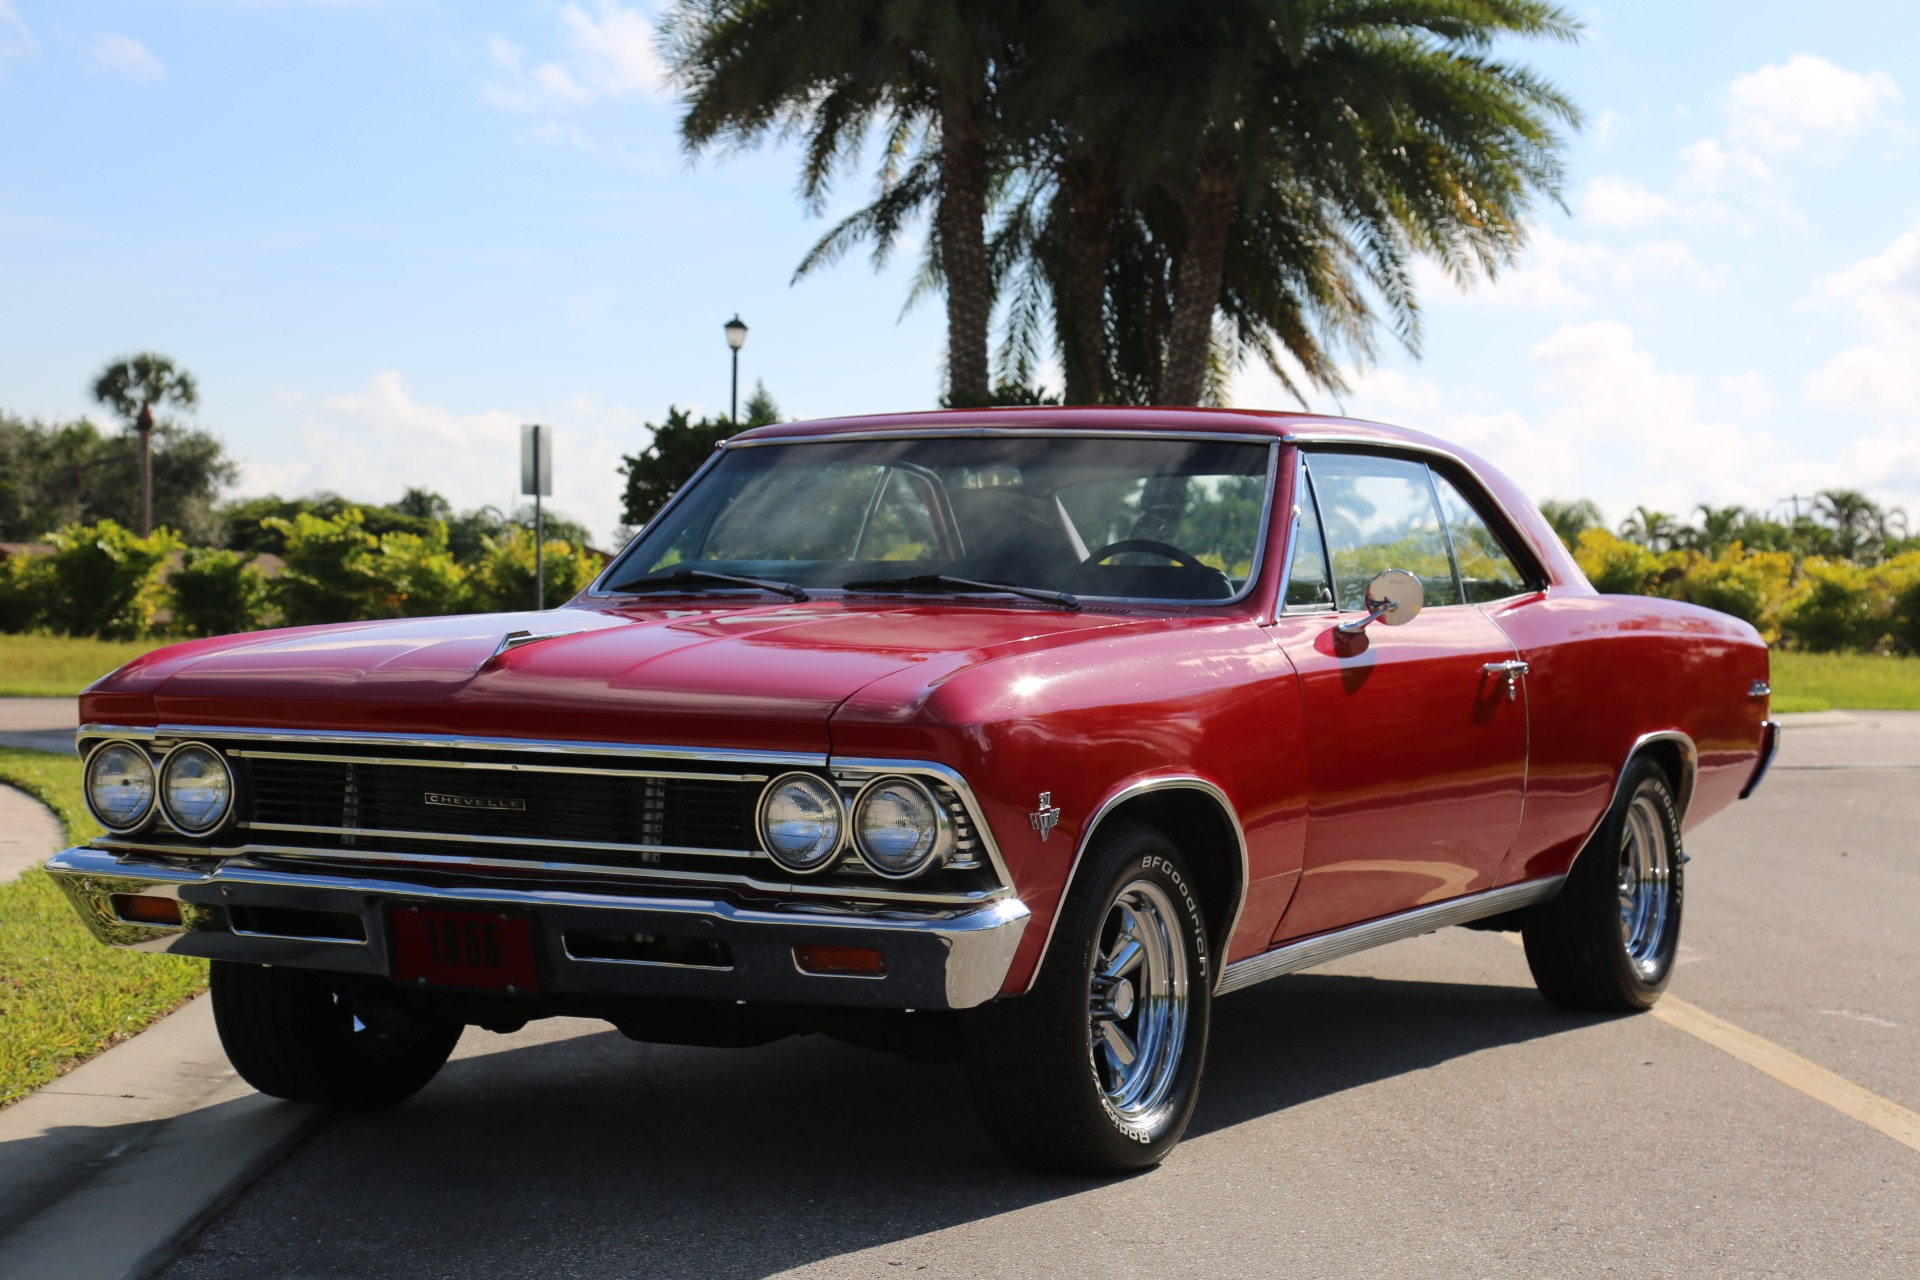 Used 1966 Chevrolet Chevelle Malibu 327 for sale Sold at Muscle Cars for Sale Inc. in Fort Myers FL 33912 1